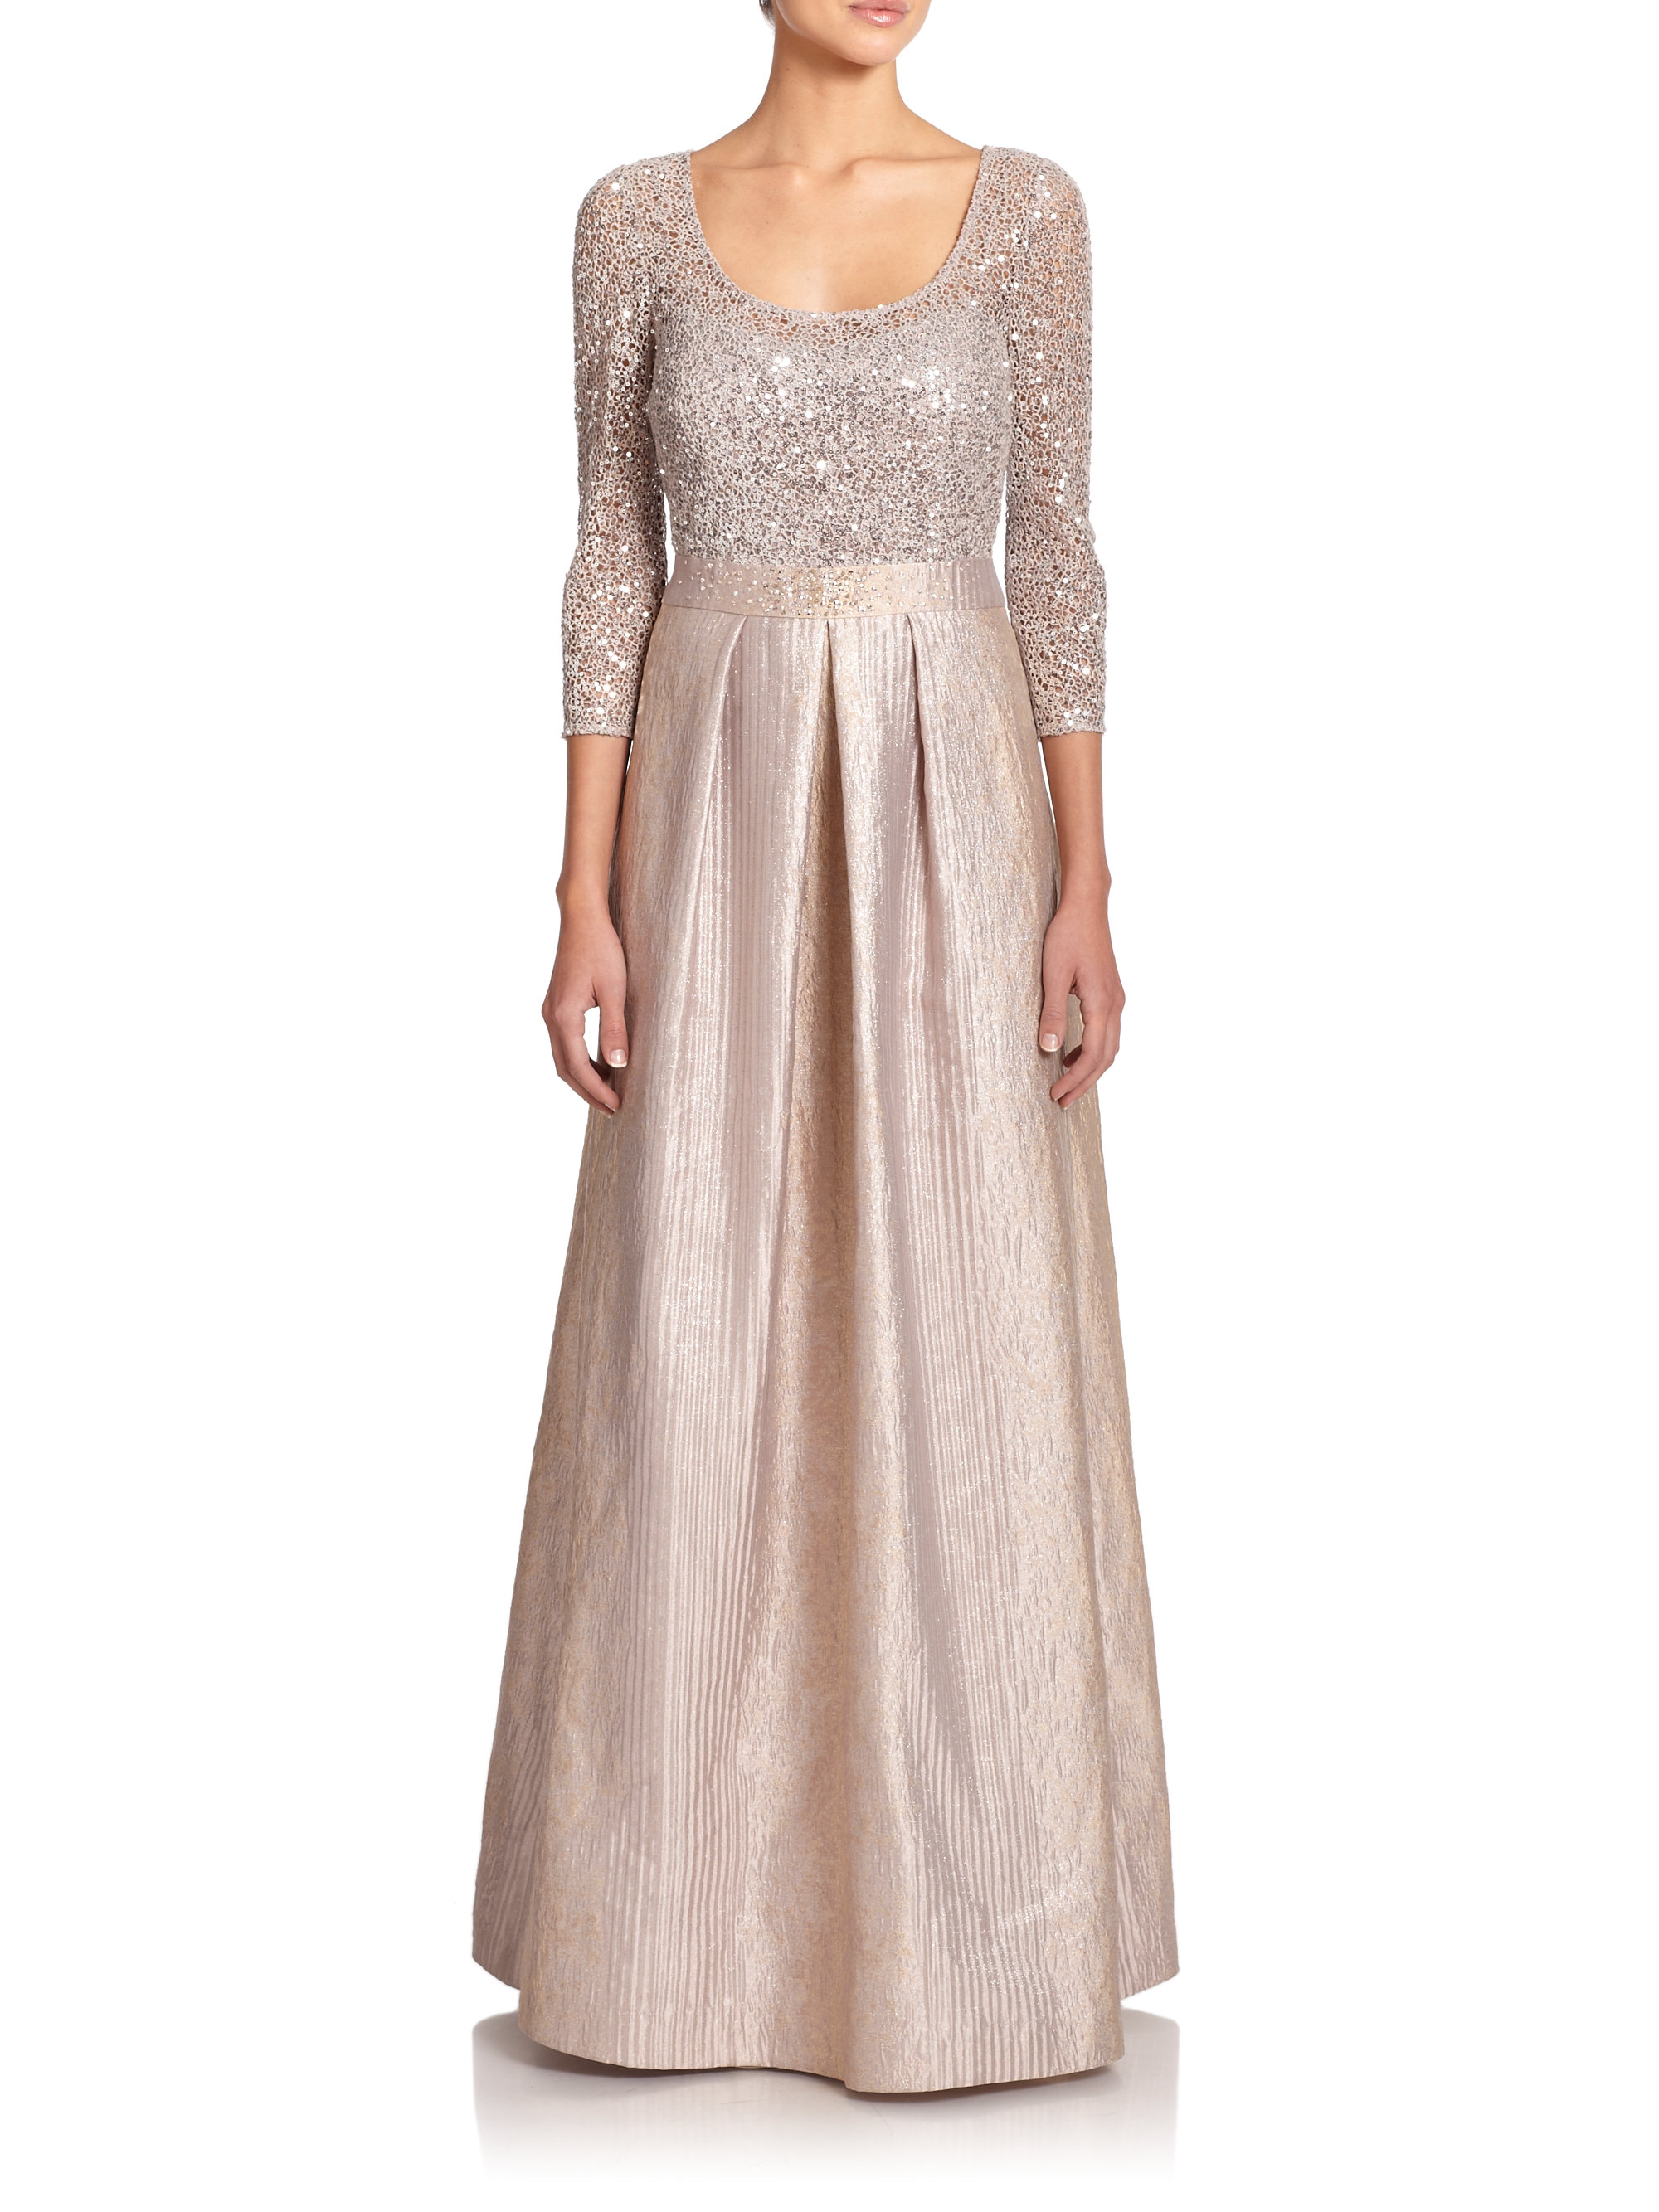 Lyst - Kay Unger Sequin Lace & Metallic Jacquard Gown in Gray